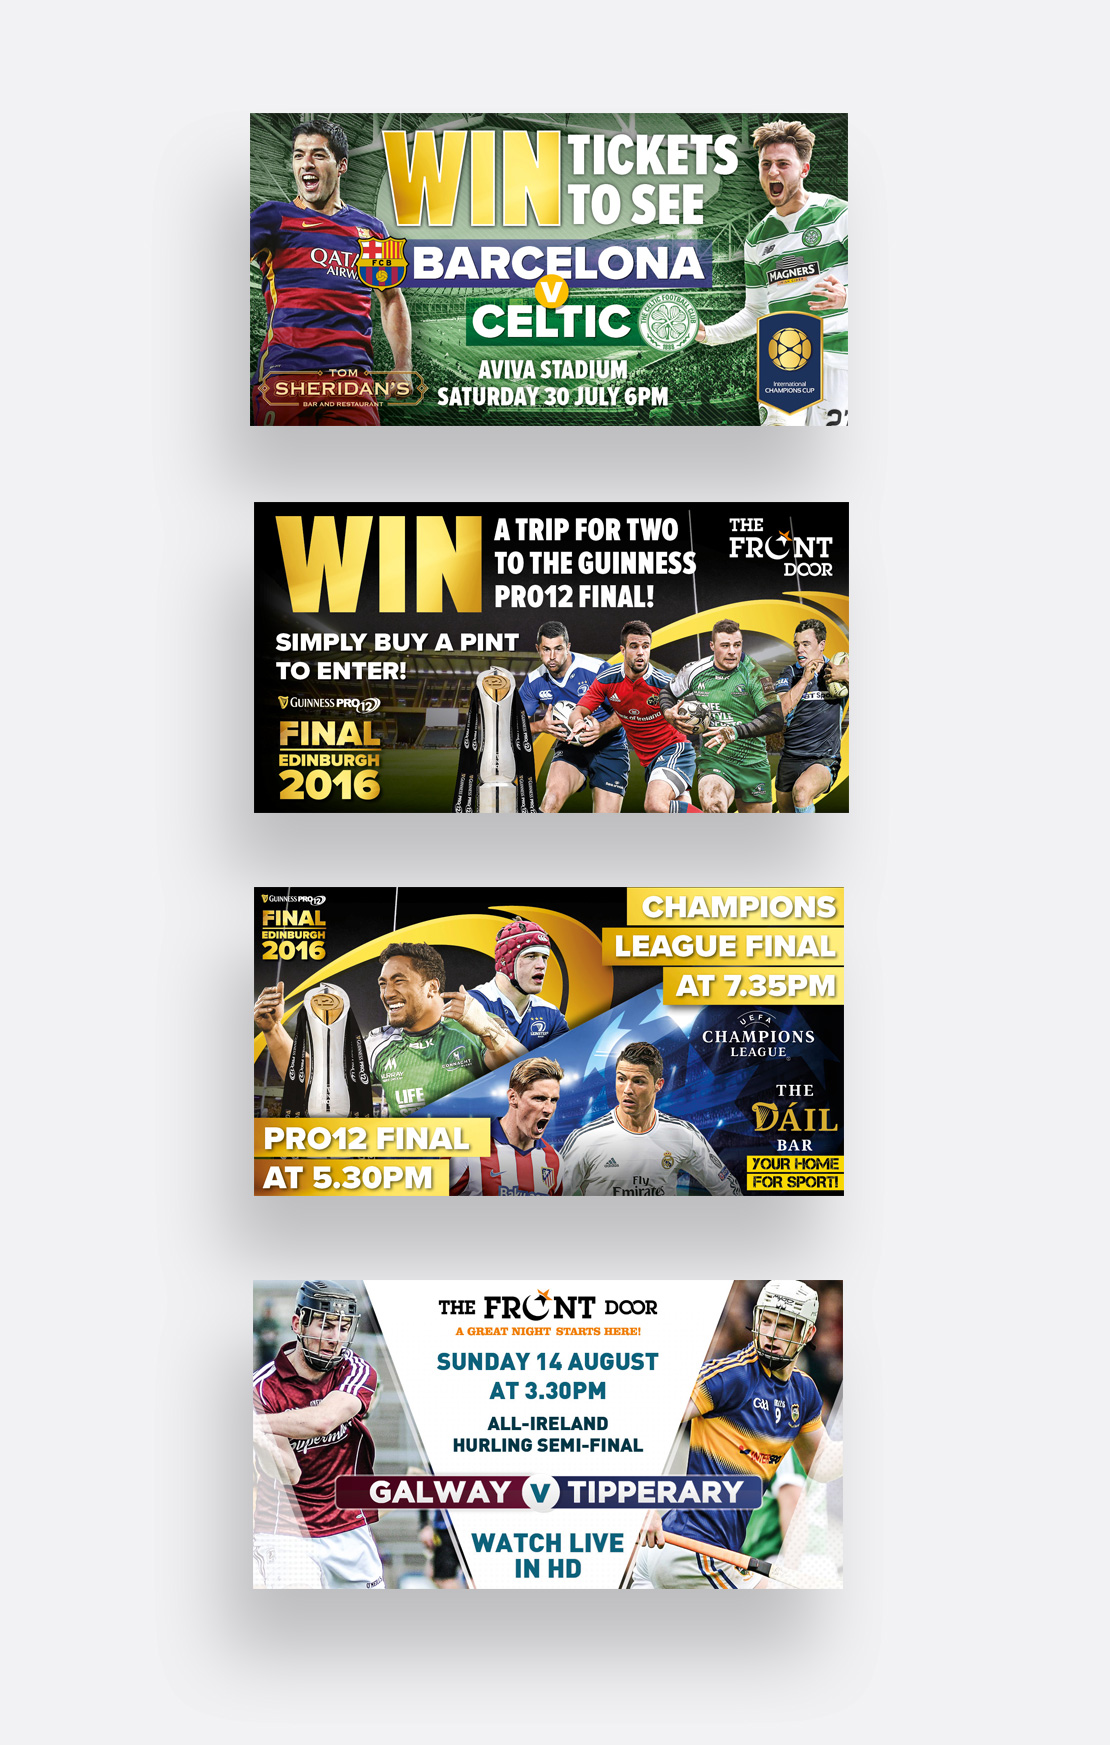 Promotional digital media for various sporting events